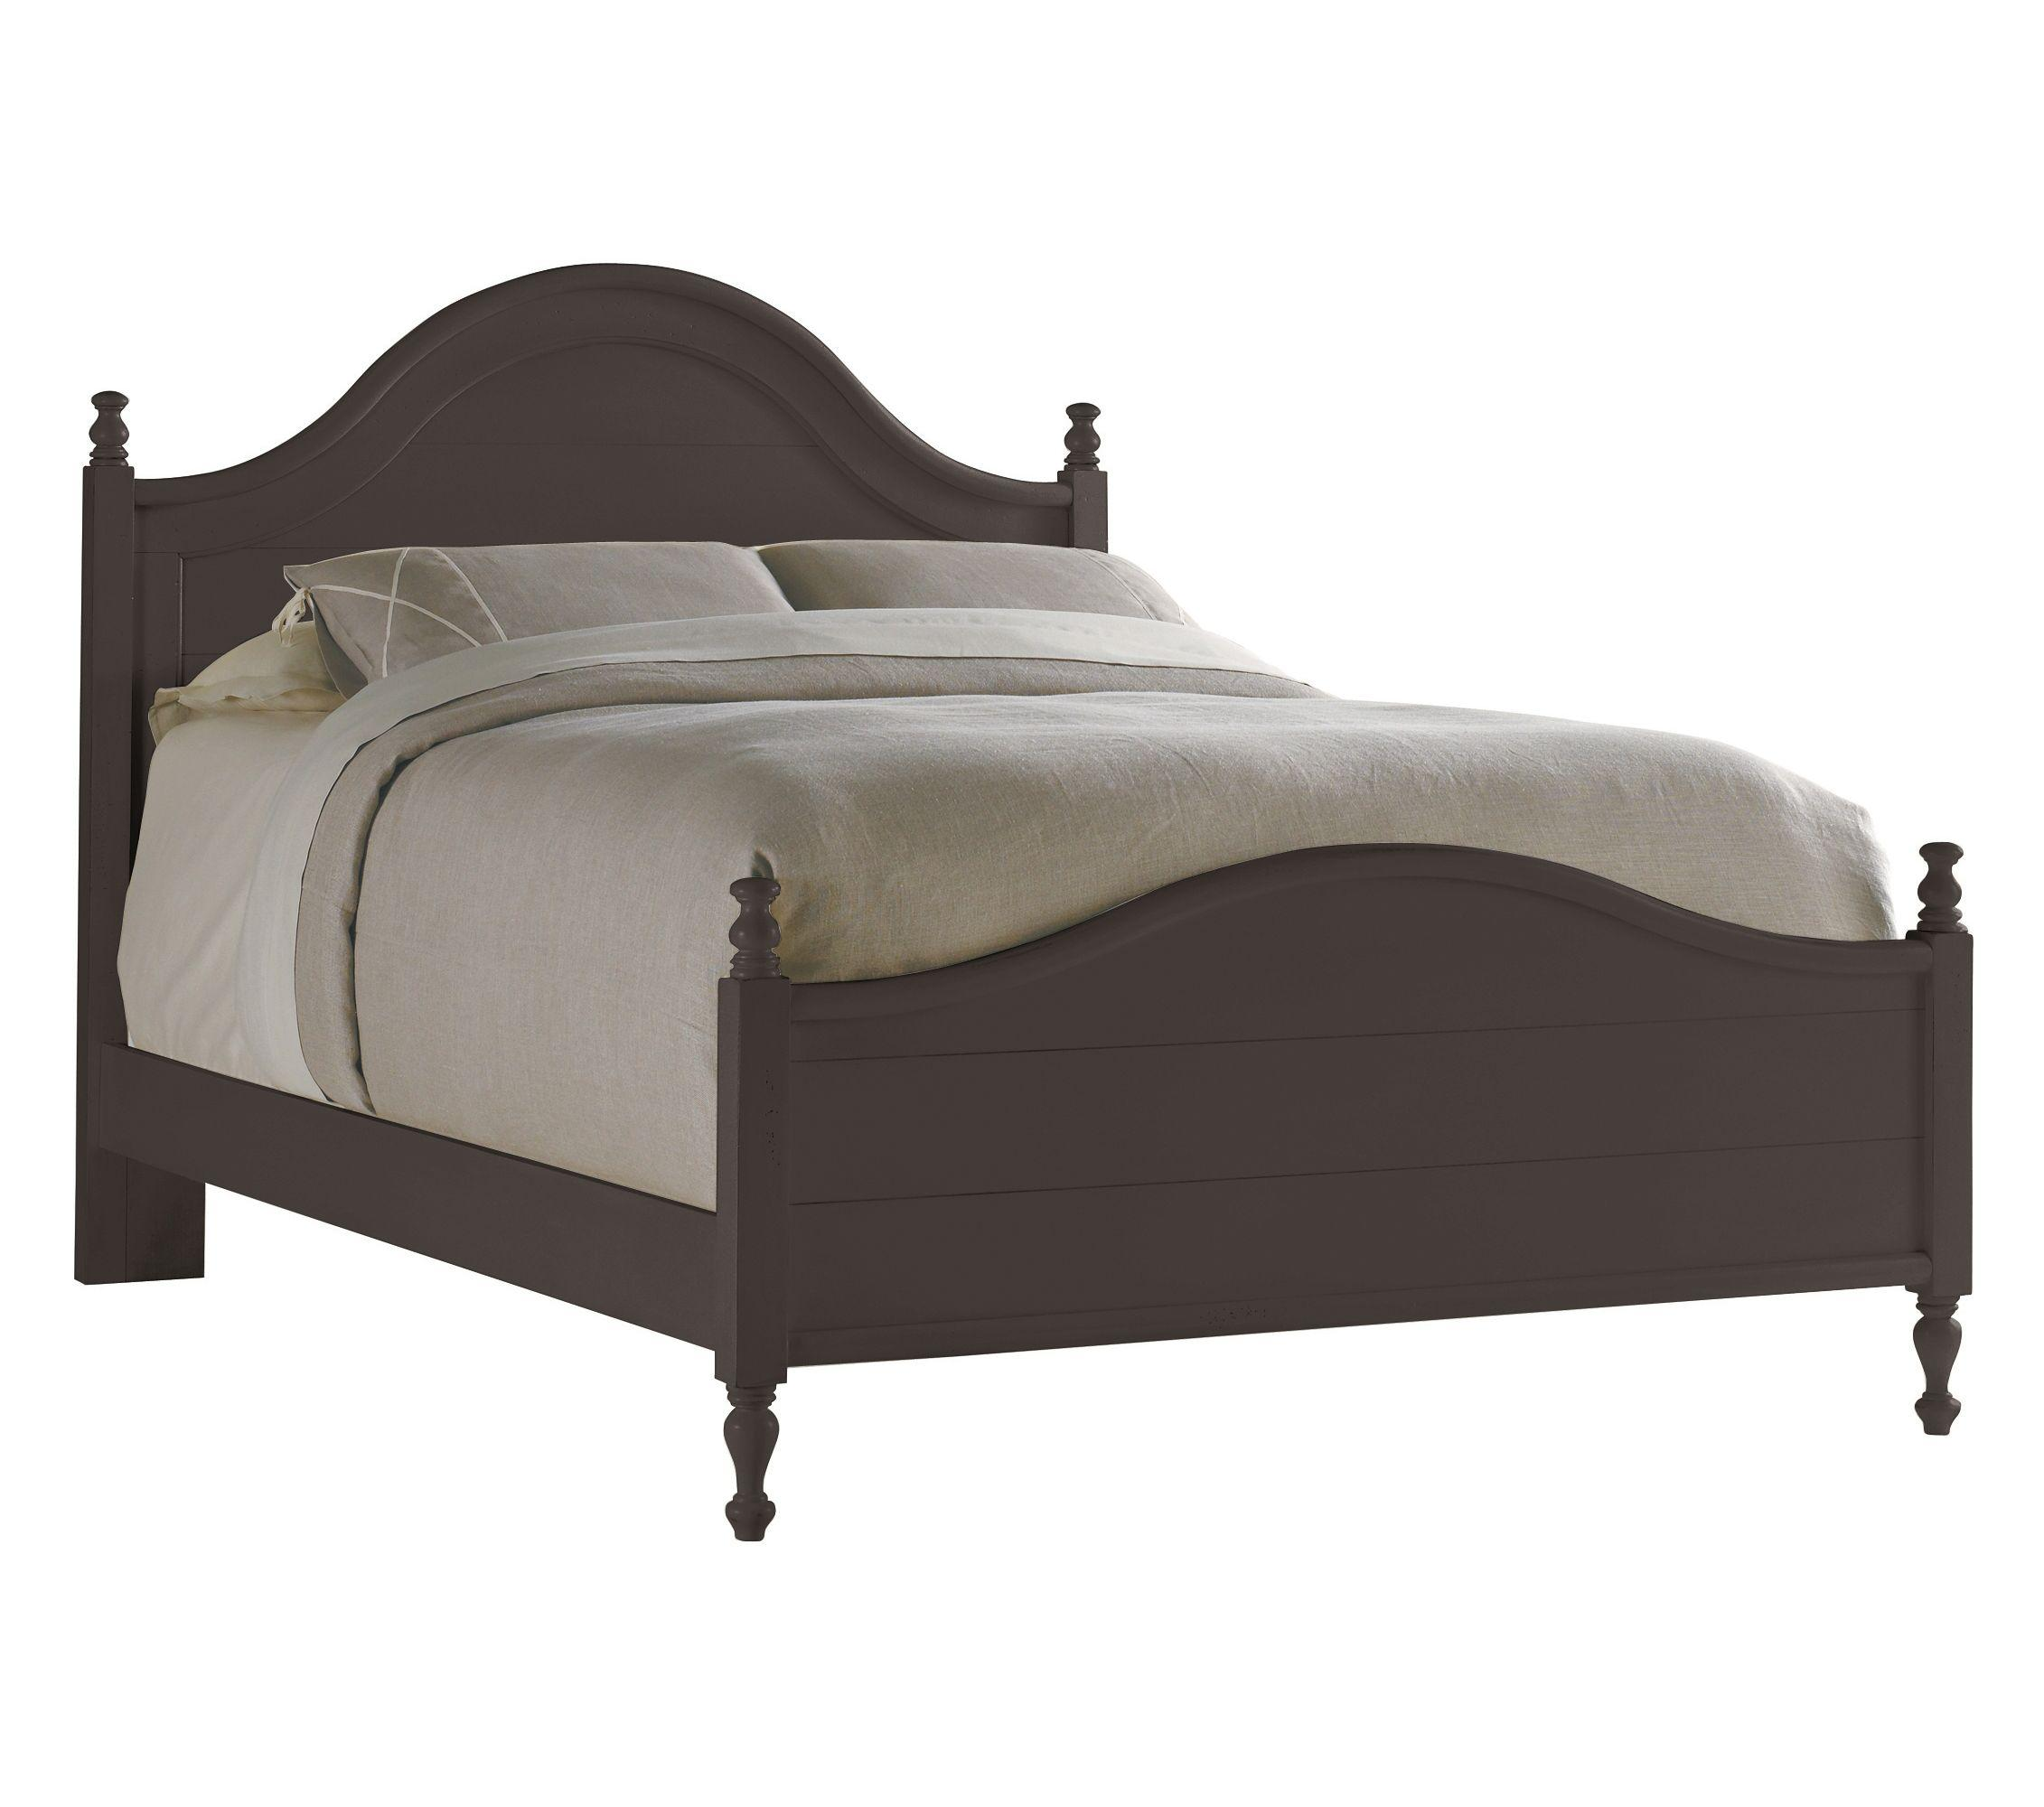 Stanley Furniture Coastal Living Retreat California King Bungalow Bed - Item Number: 411-83-38